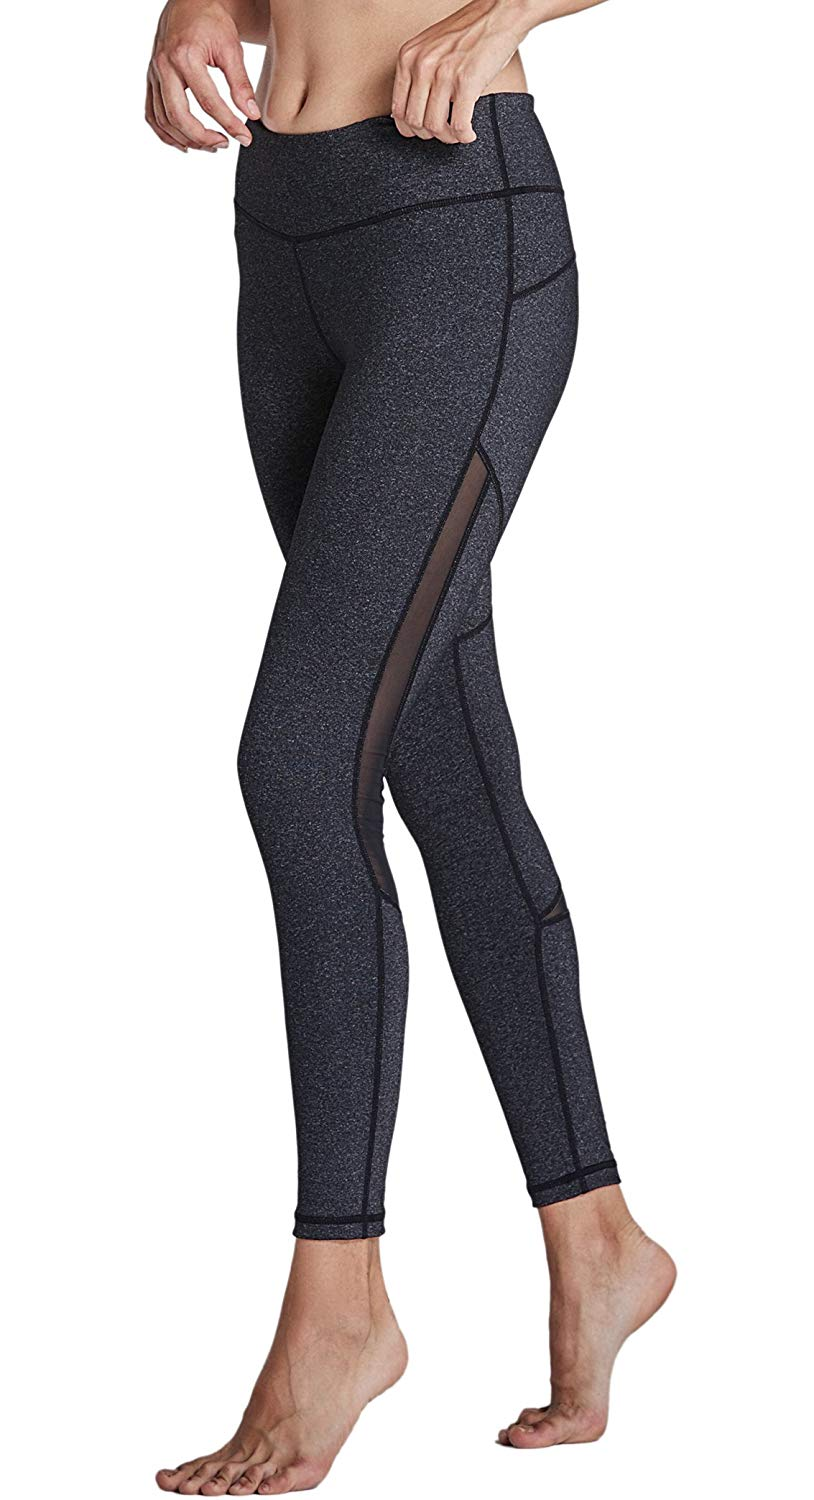 5055d5c857 Komprexx Womens Yoga Pants Mesh Workout Leggings with Pockets Exercise  Fitness Gym Tights Activewear